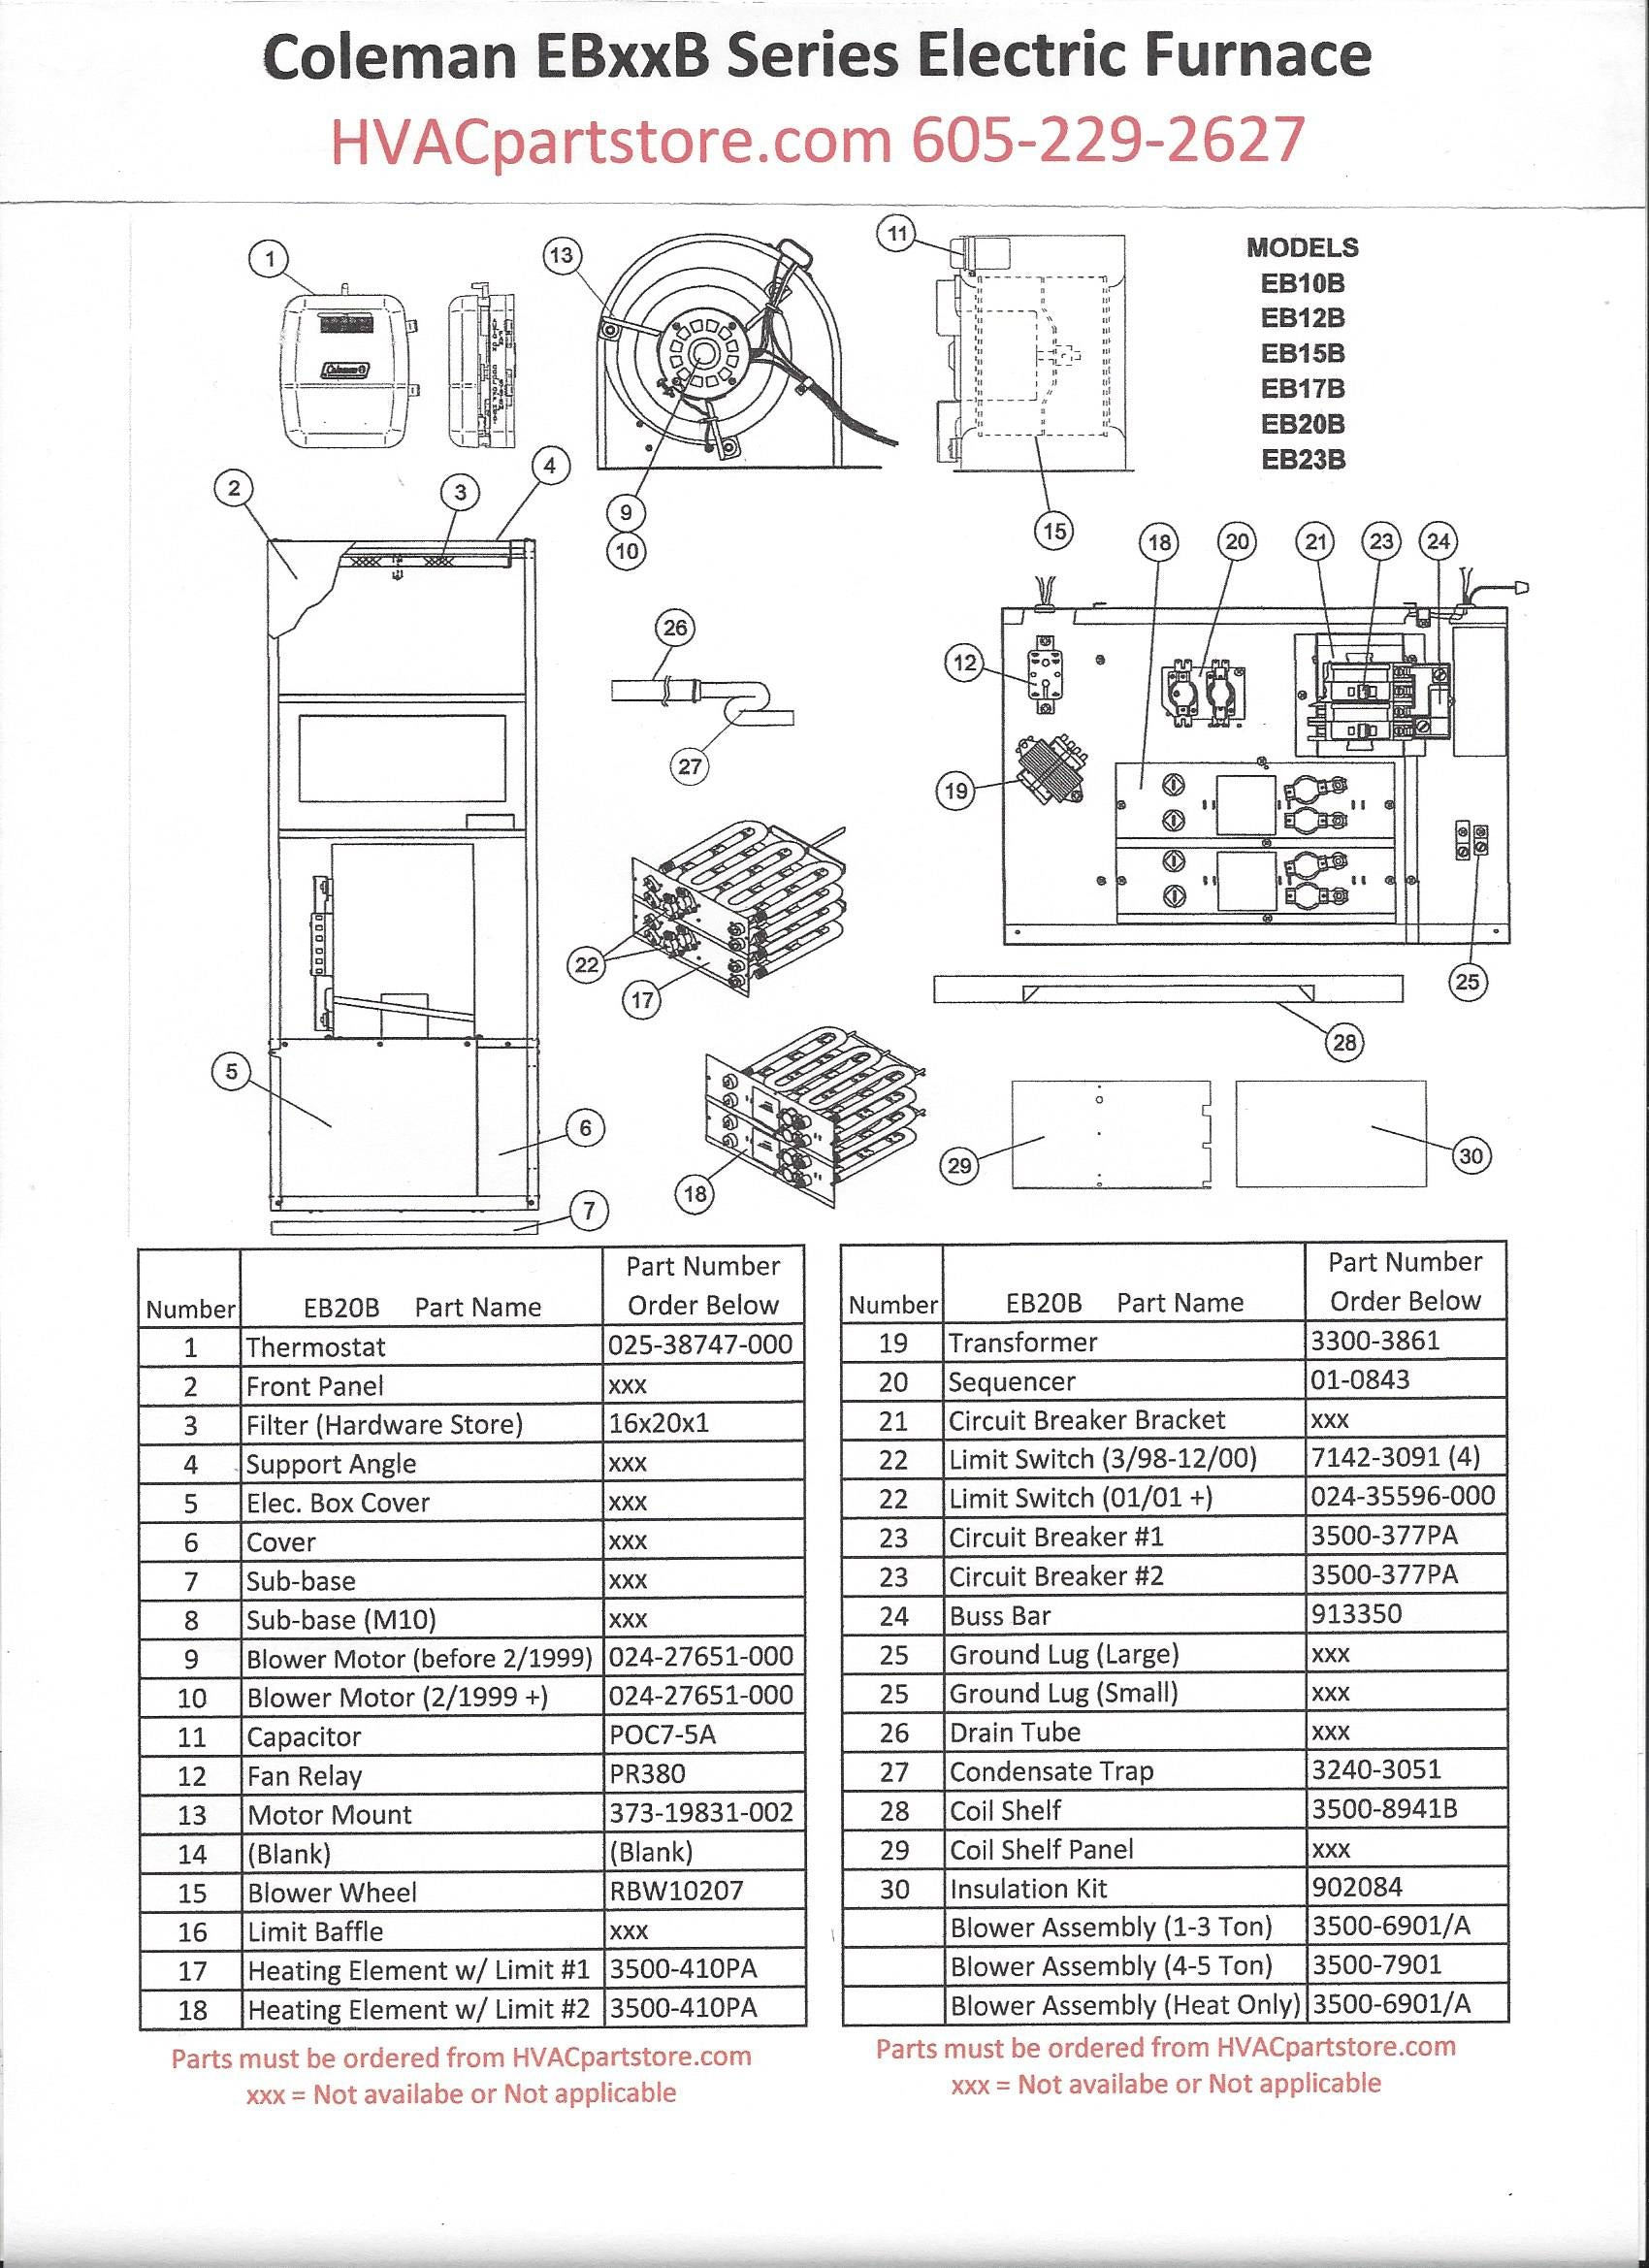 Coleman Furnace Fan Wiring Diagram additionally Three Prong Wiring Diagram Led also 3 Prong Vs 4 Prong Oven Outlet 38899 besides 10000 Lb Cradle Boat Lift together with 120 Volt Outlet Wiring Diagram. on 4 wire 220 to 110 wiring diagram